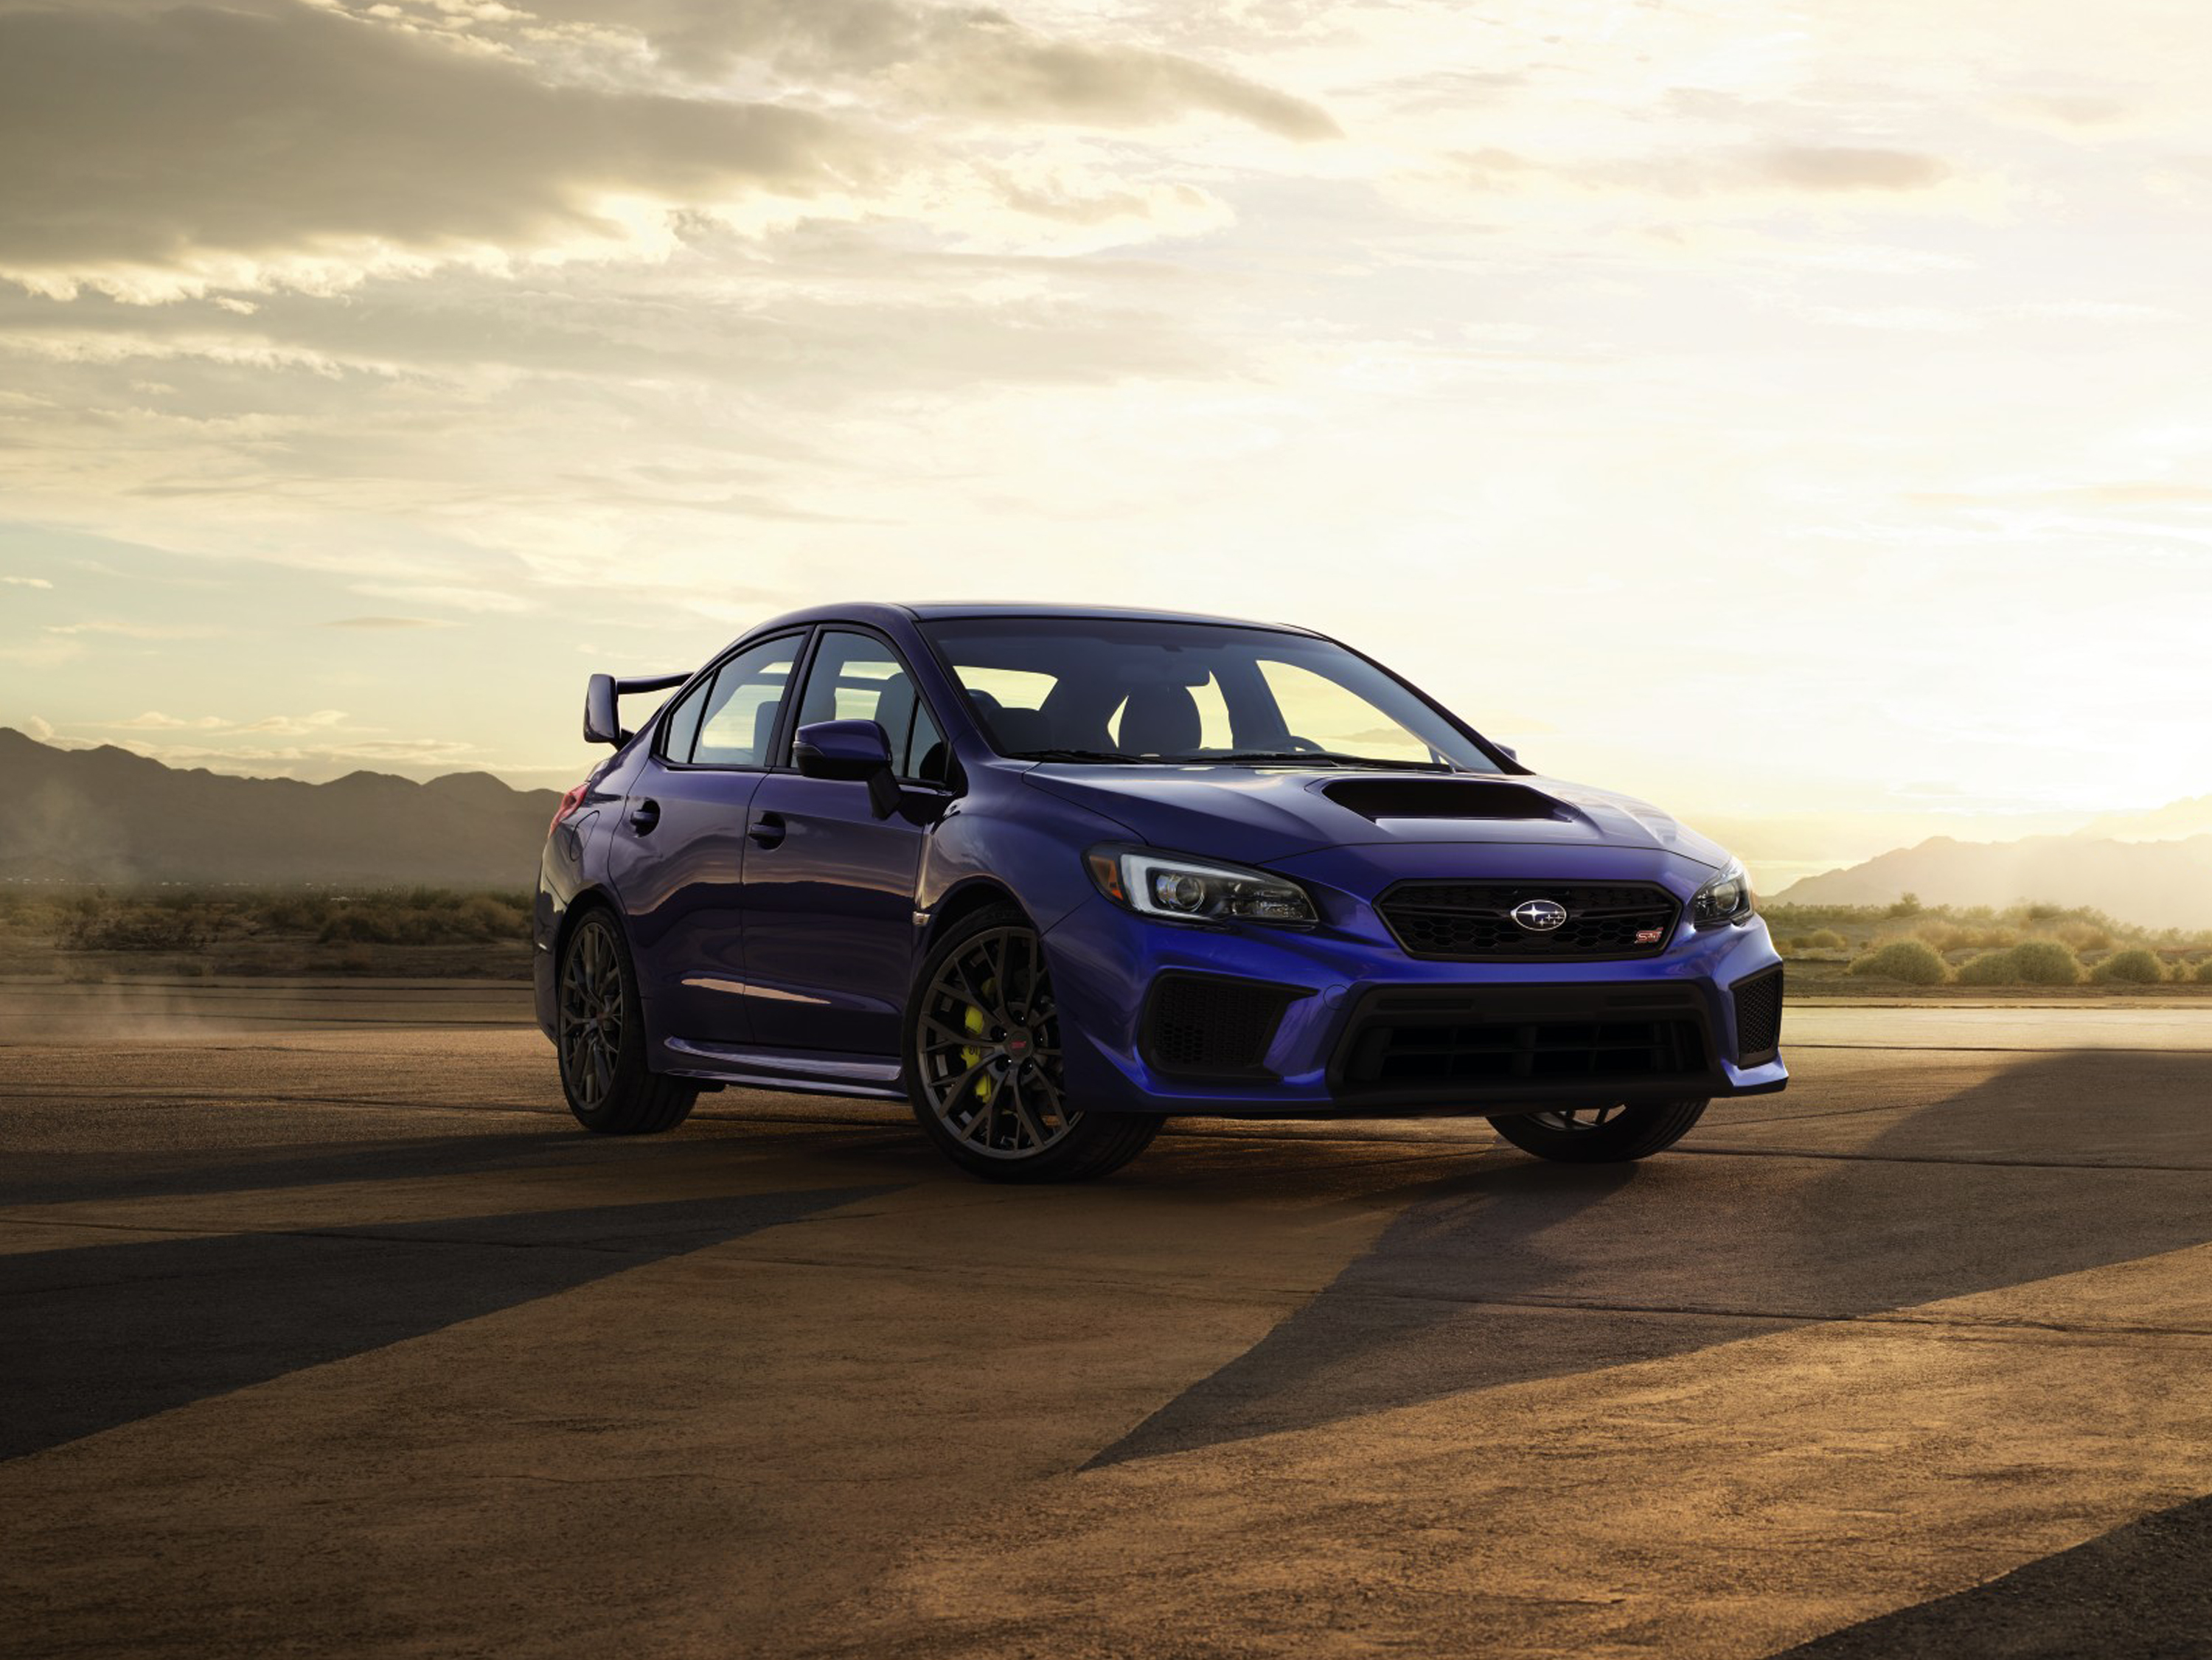 X Subaru Has Revealed The 2018 Wrx Lineup